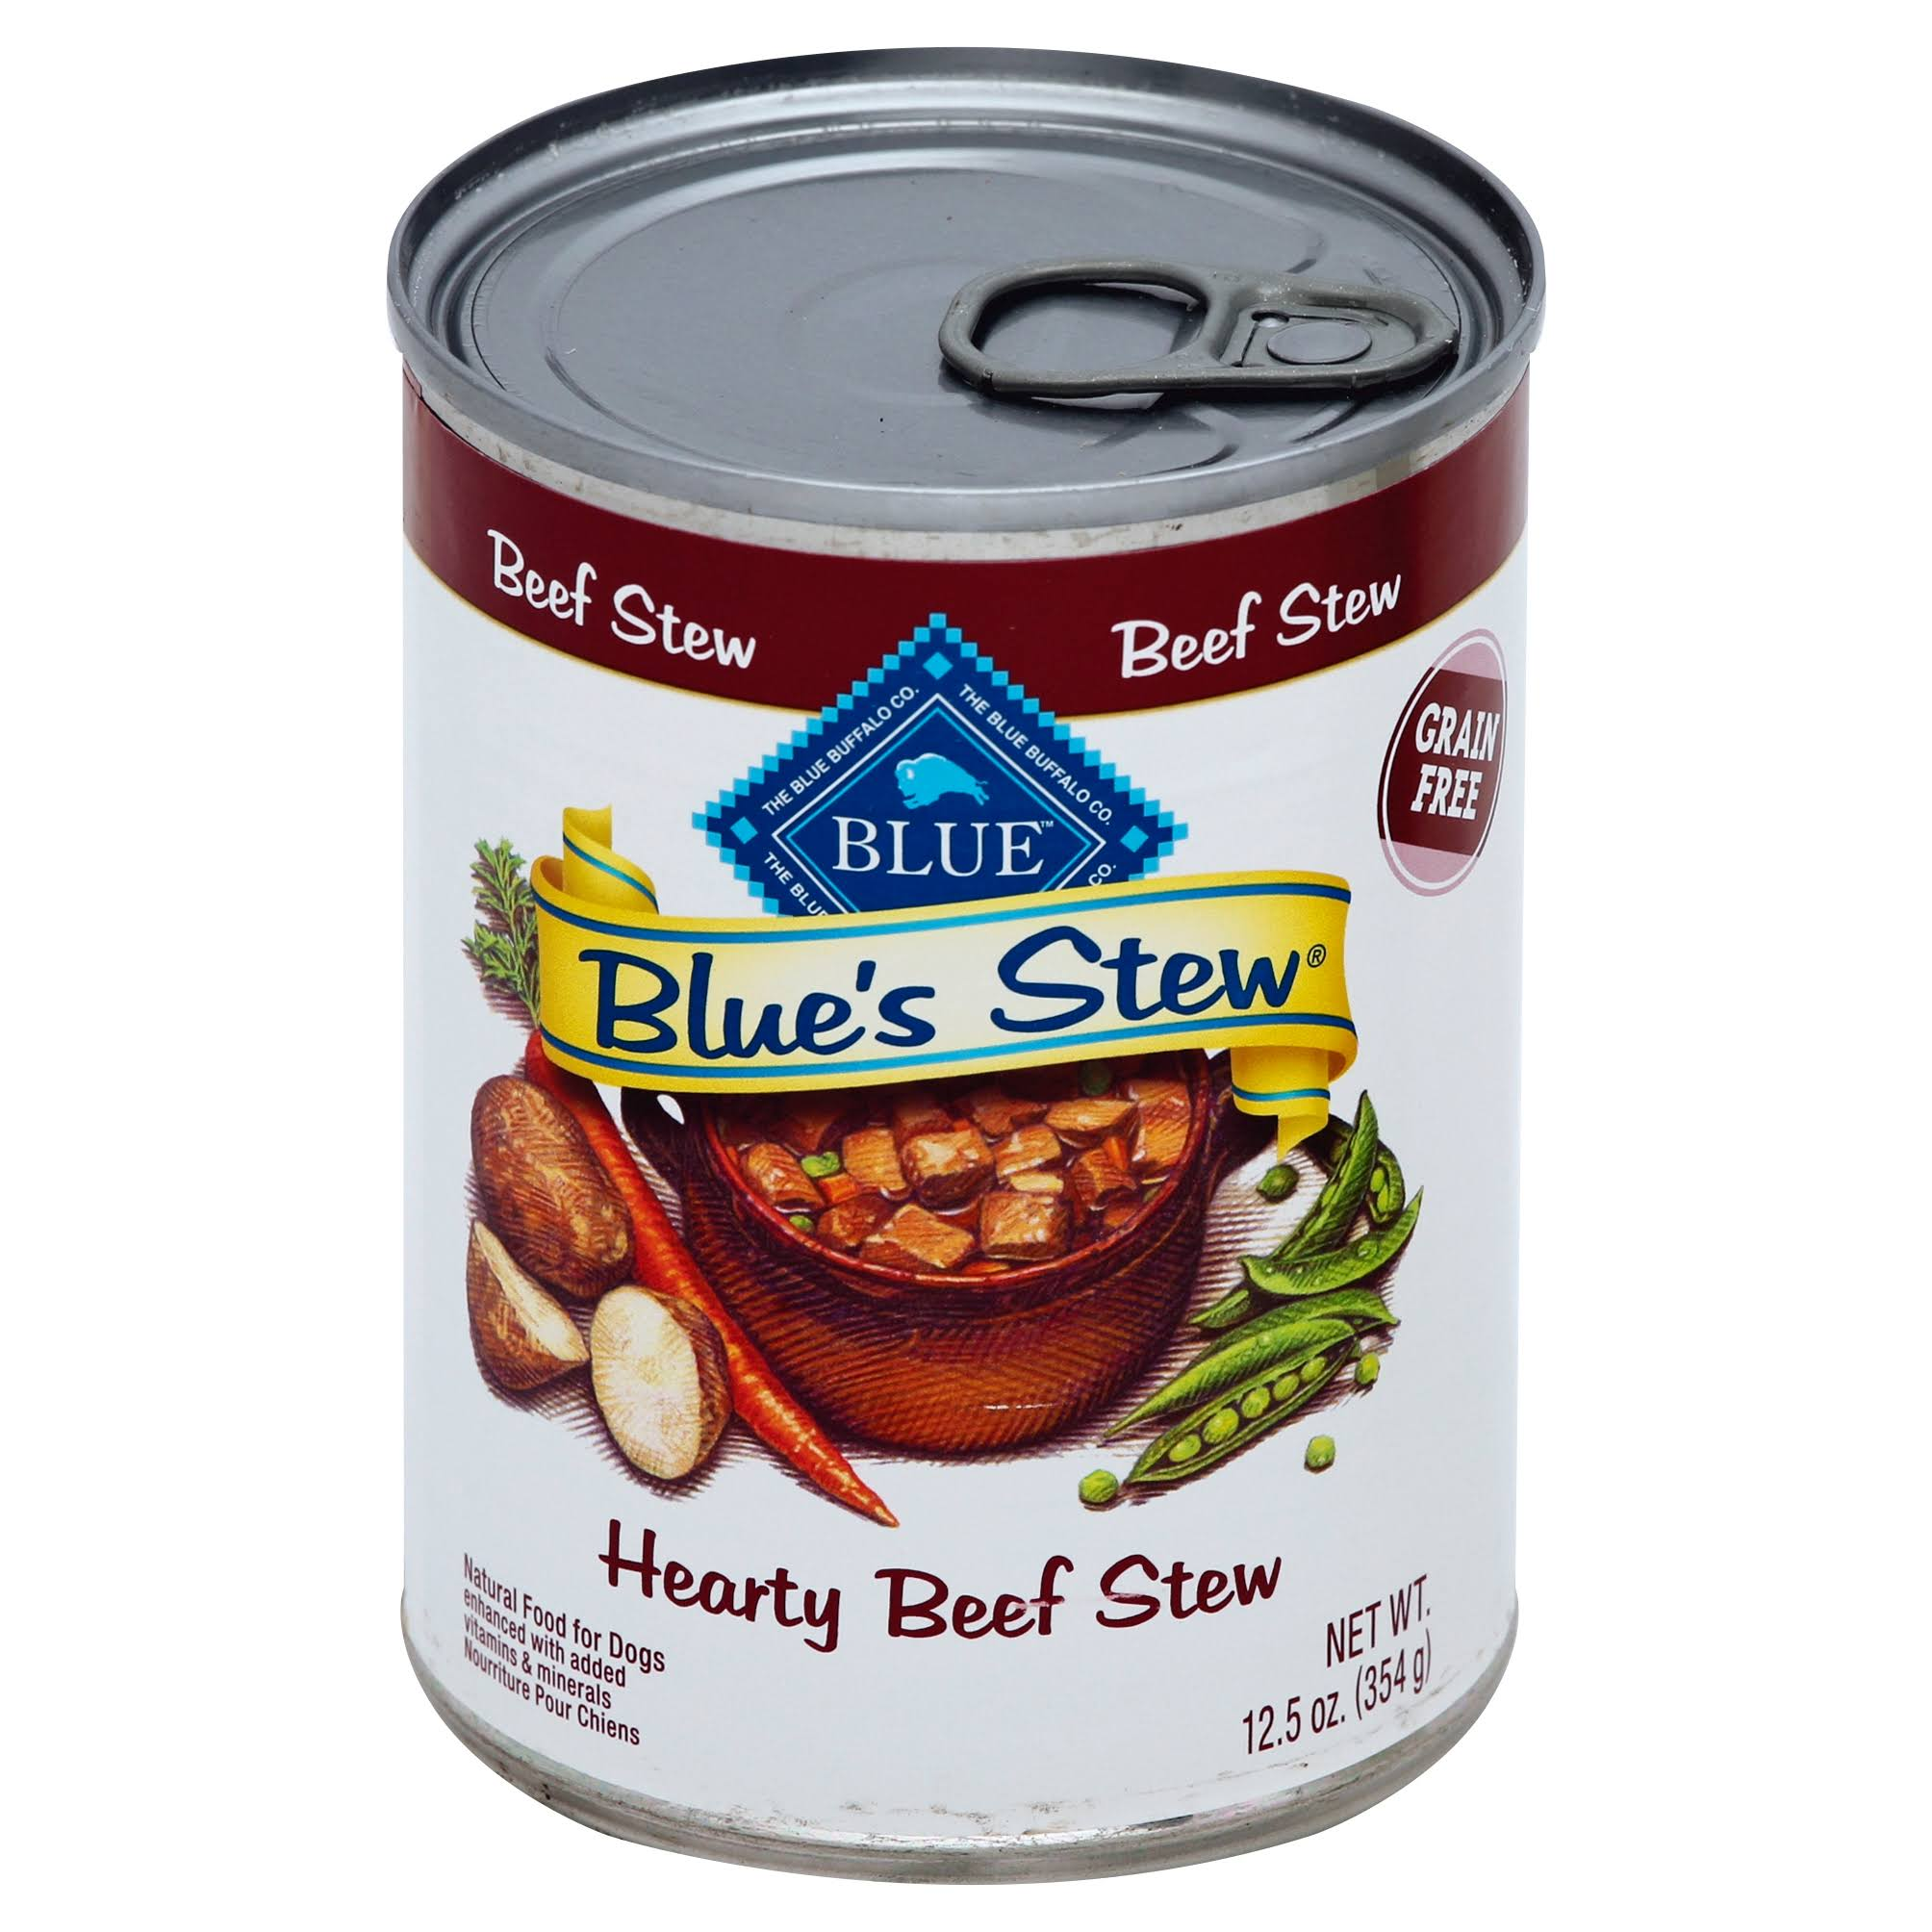 Blue Blue's Stew Adult Dog Food - Beef